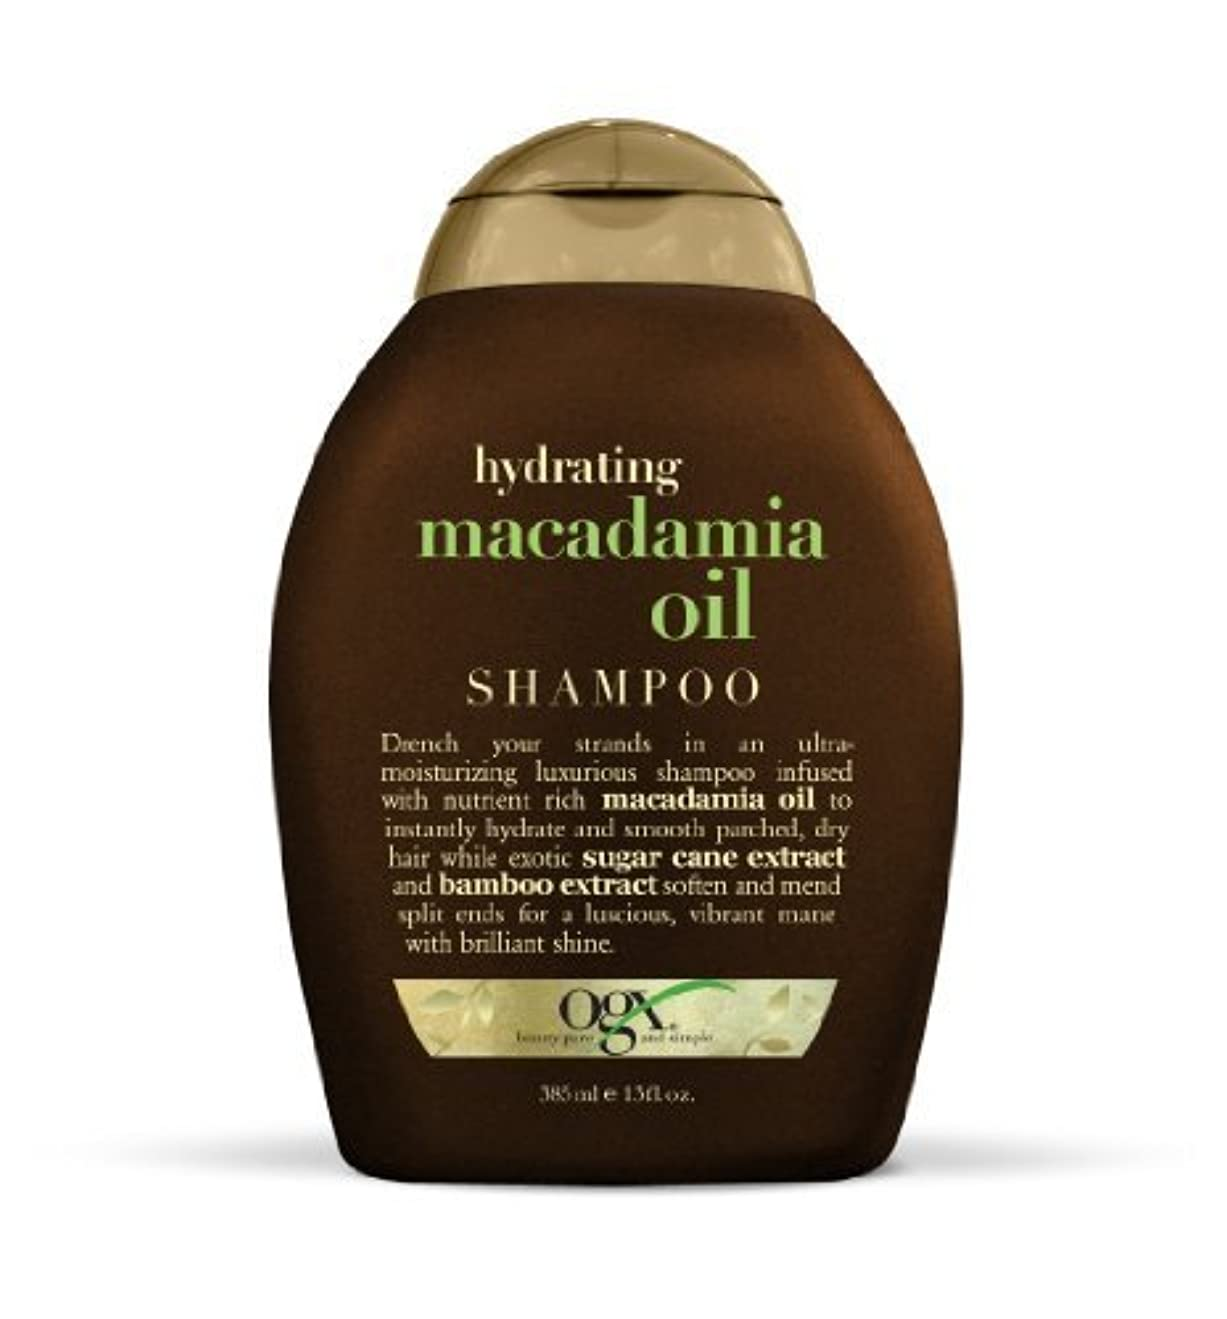 掘る選挙船上OGX Shampoo, Hydrating Macadamia Oil, 13oz by Ogx [並行輸入品]